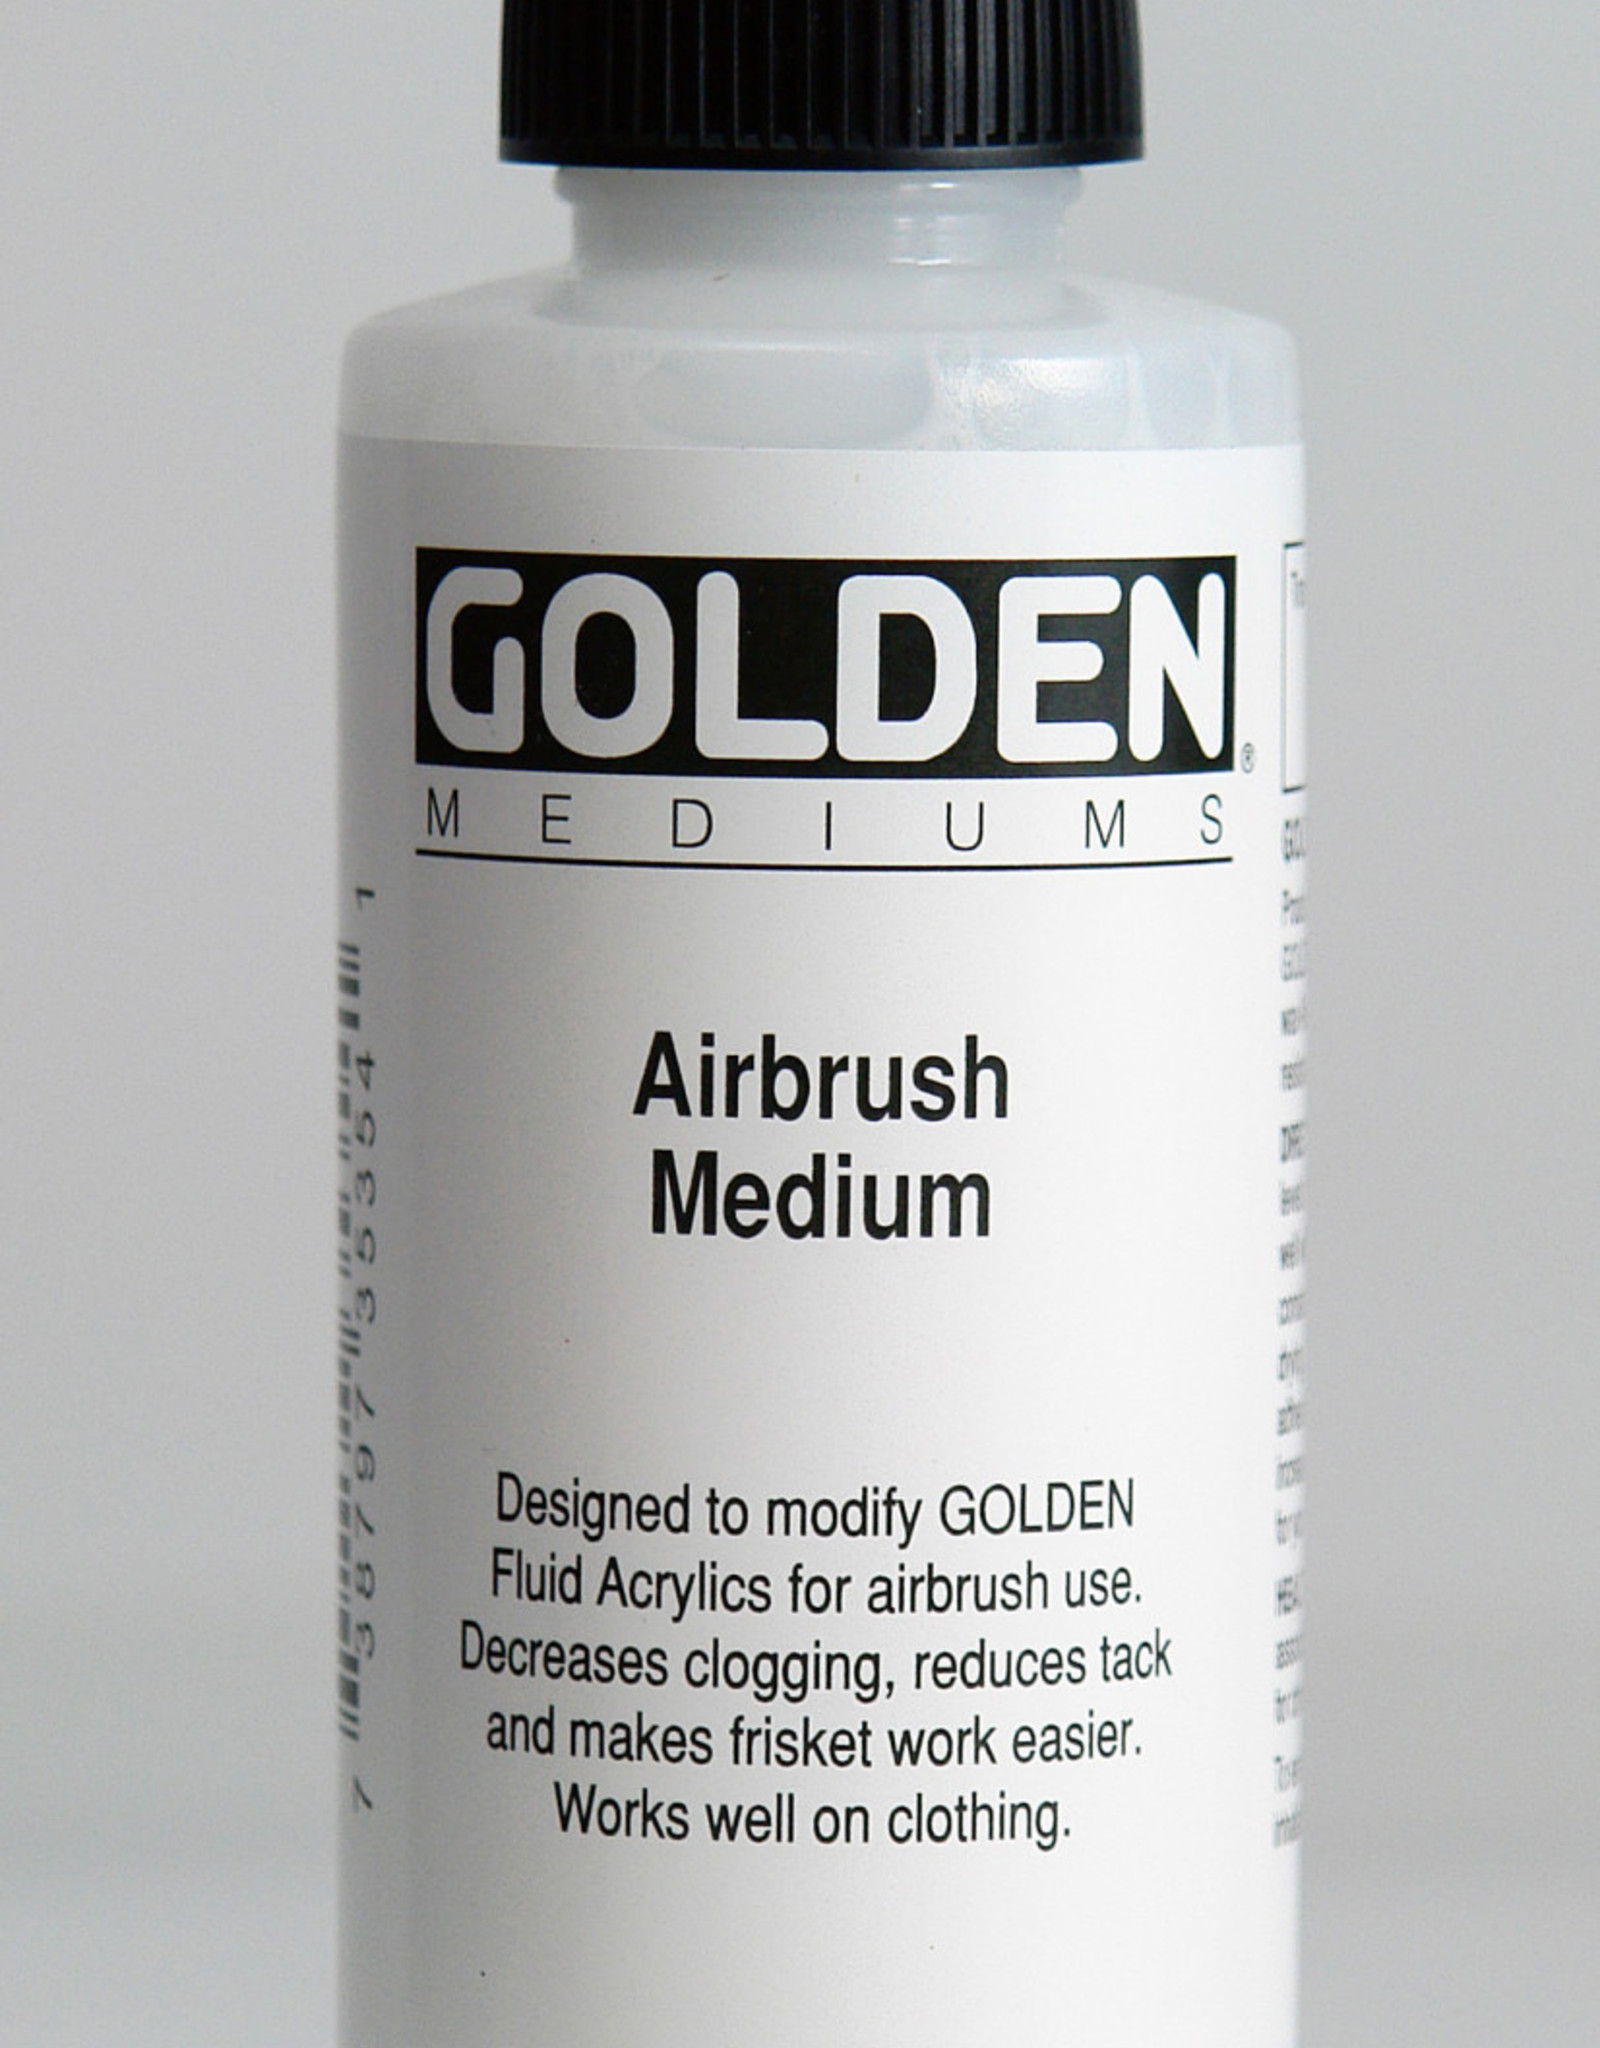 Golden, Airbrush Medium, Acrylic, 4 Fl Oz.